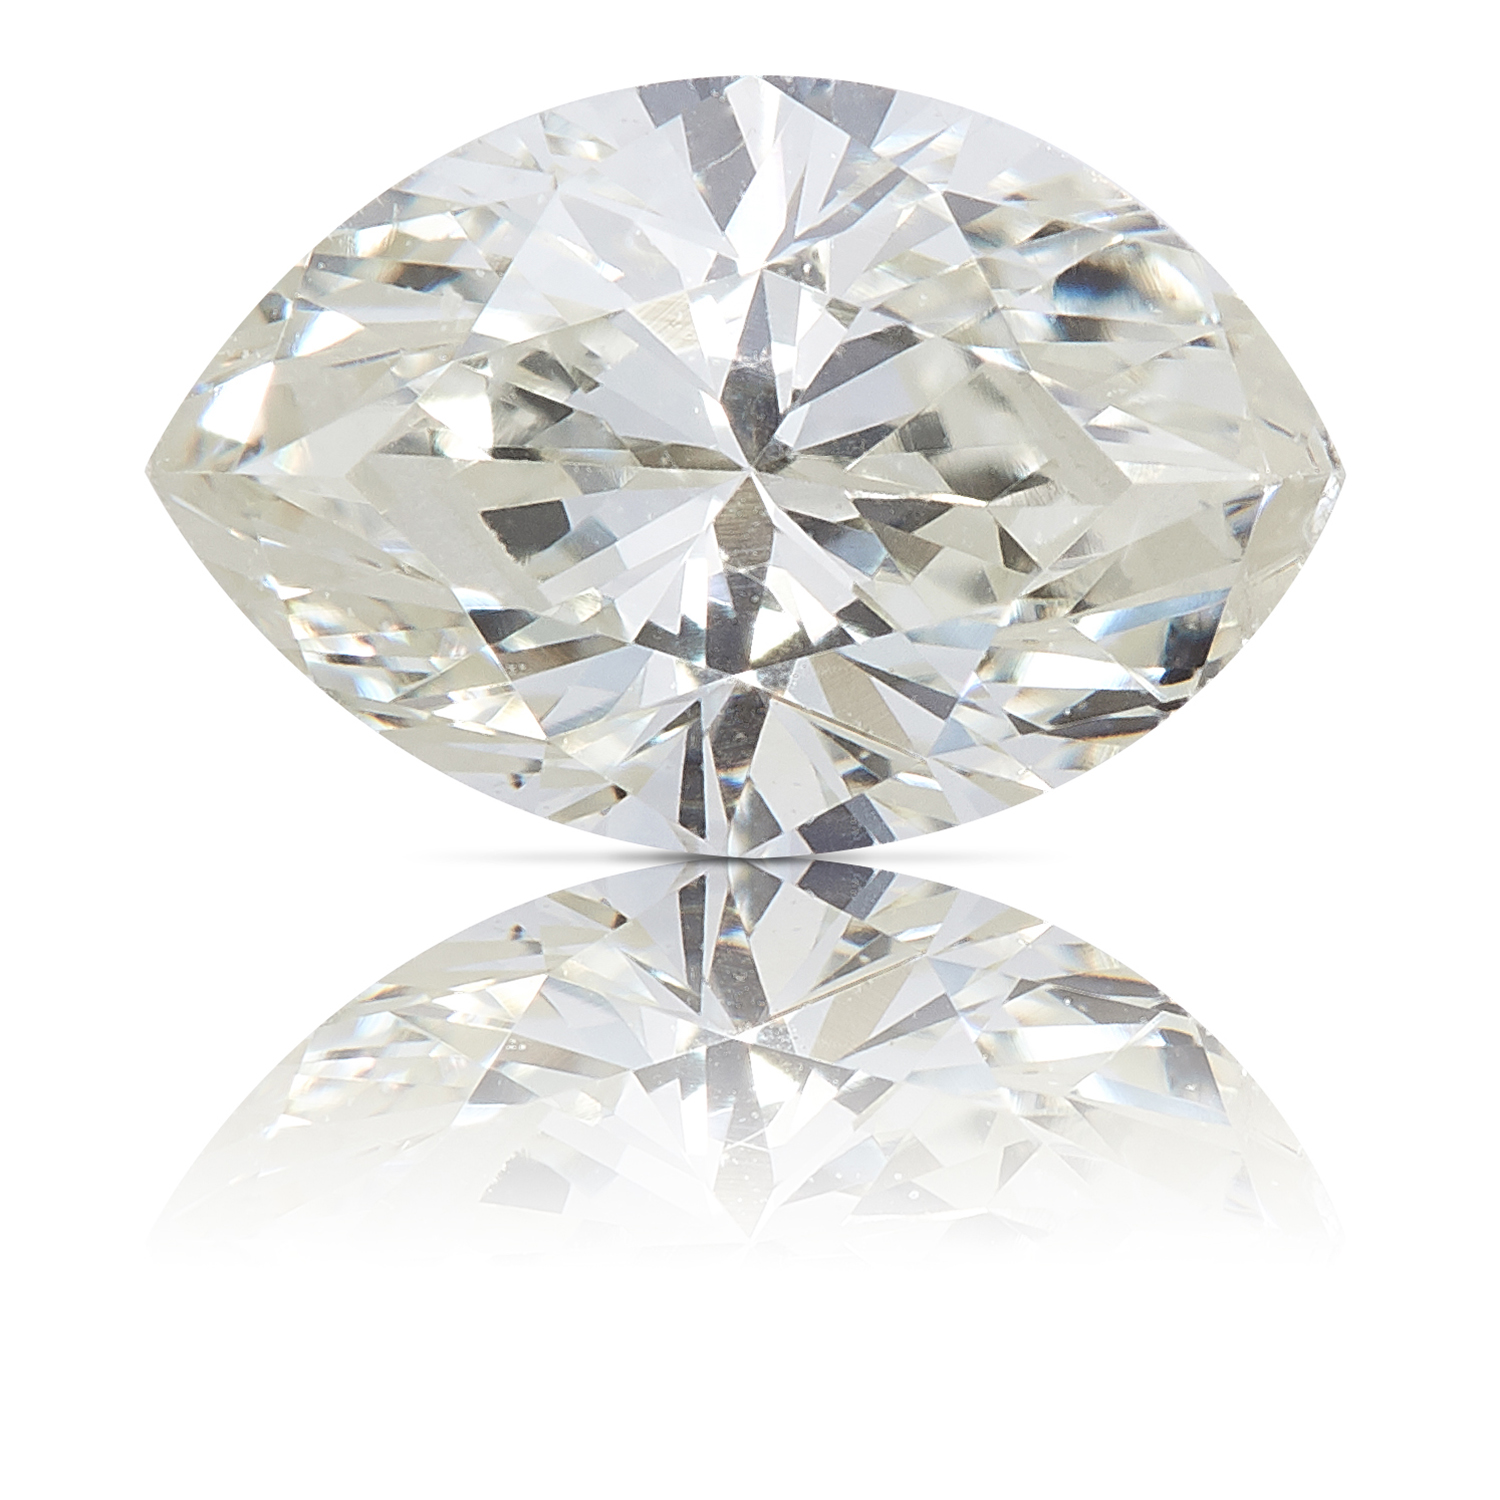 A 0.37ct MARQUISE CUT DIAMOND, UNMOUNTED.